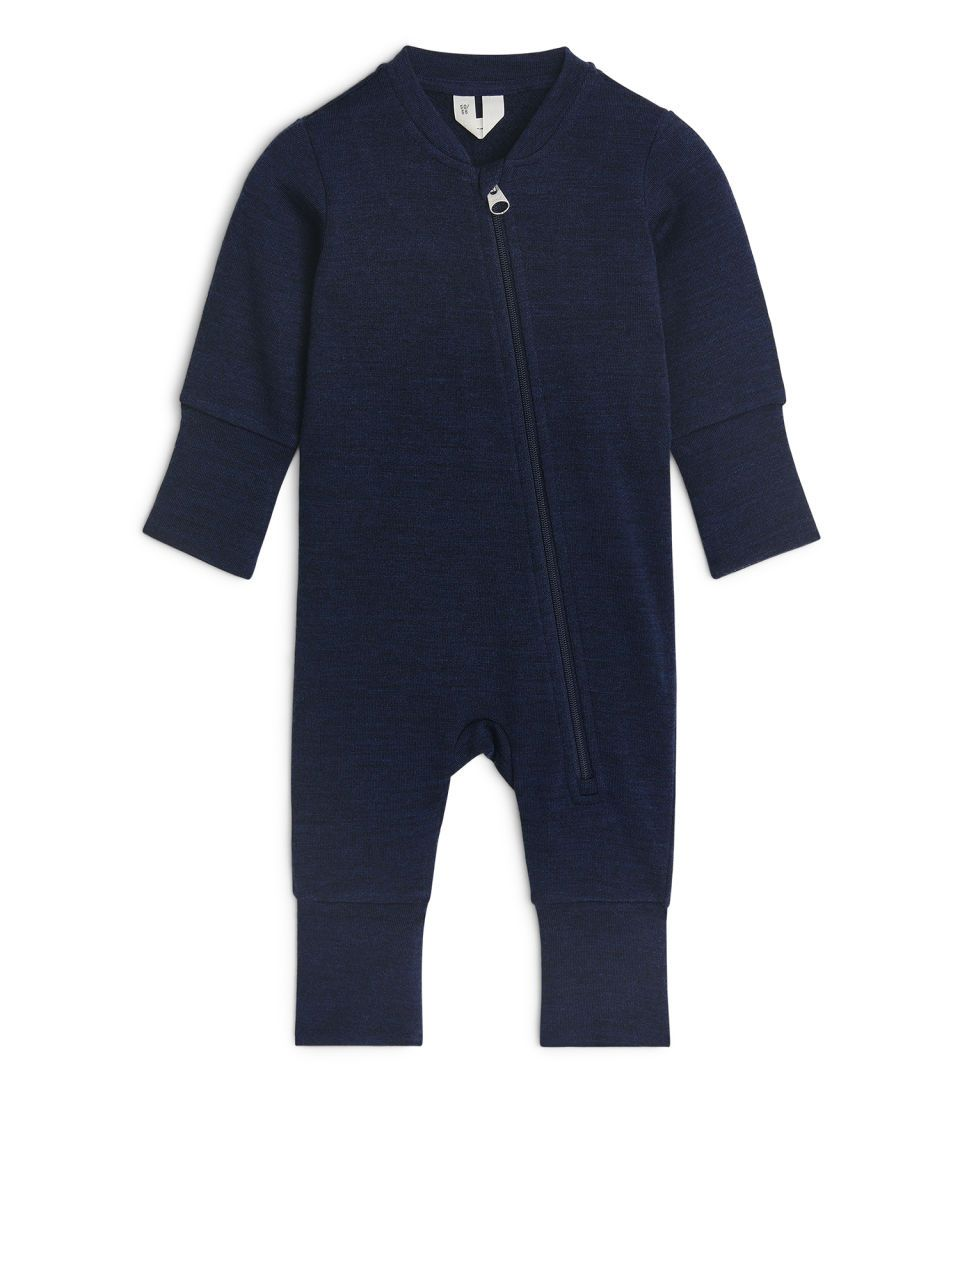 4b2f9cdf8 Made of a lightweight French Terry fabric in soft merino wool